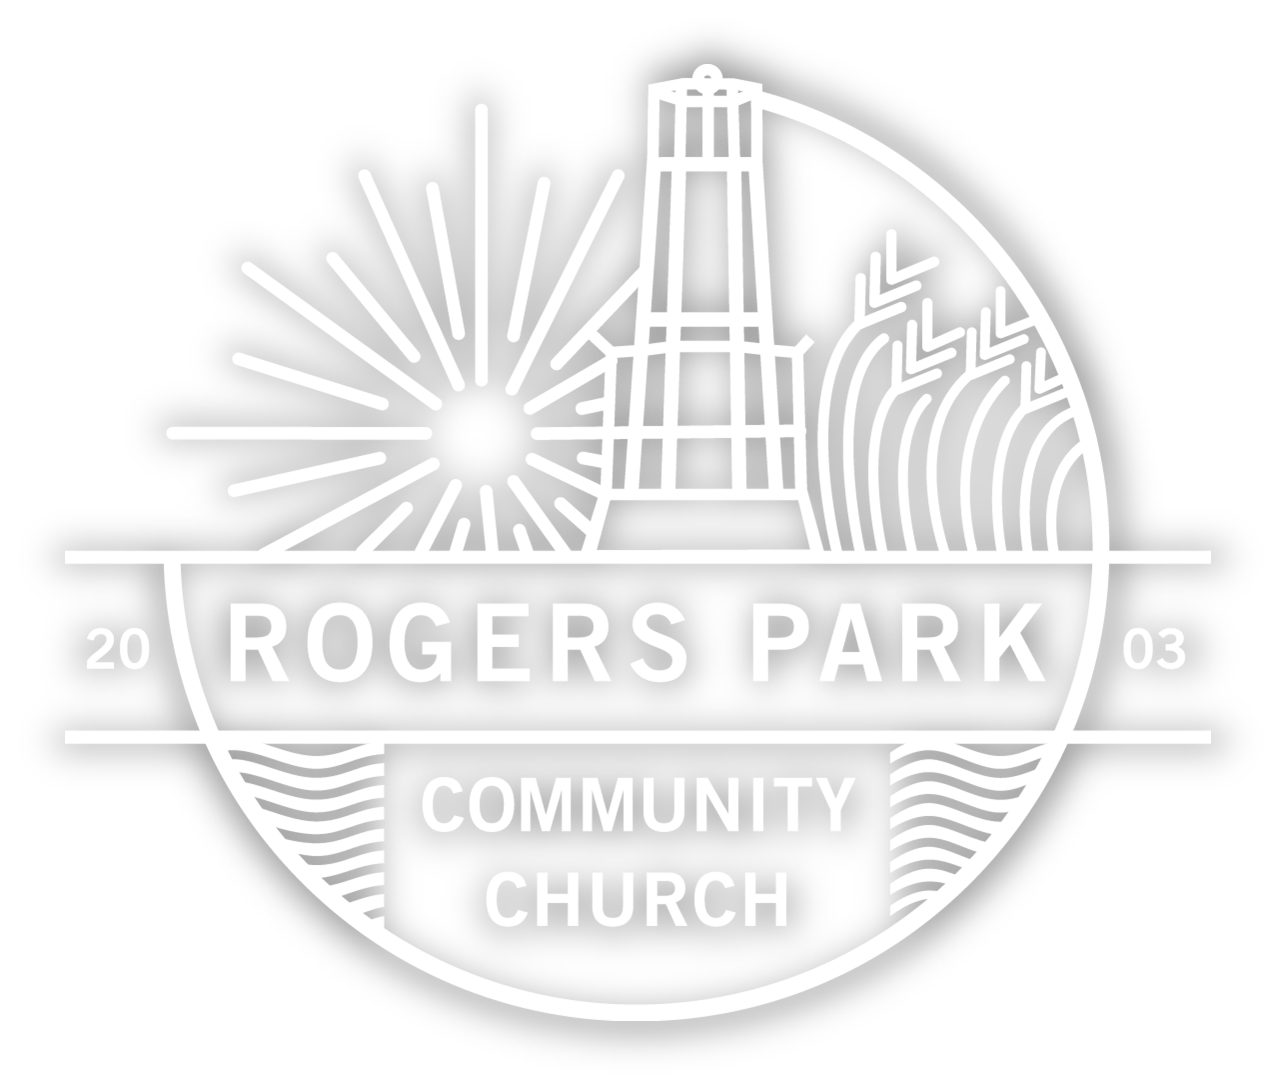 Rogers Park Community Church